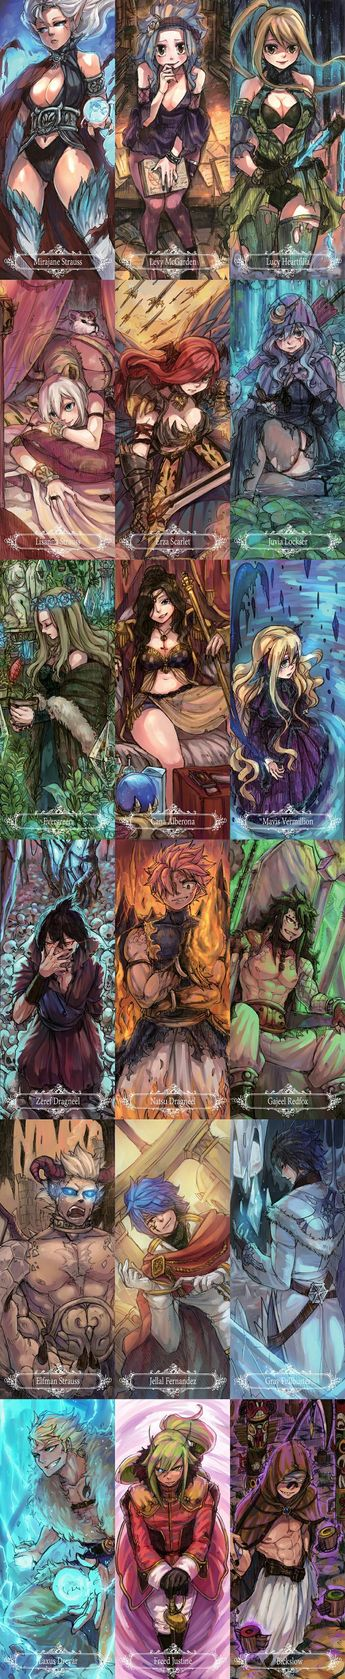 Evil fairy tail. I WOULD PAY TO SEE THIS [I'm broke, so you understand]